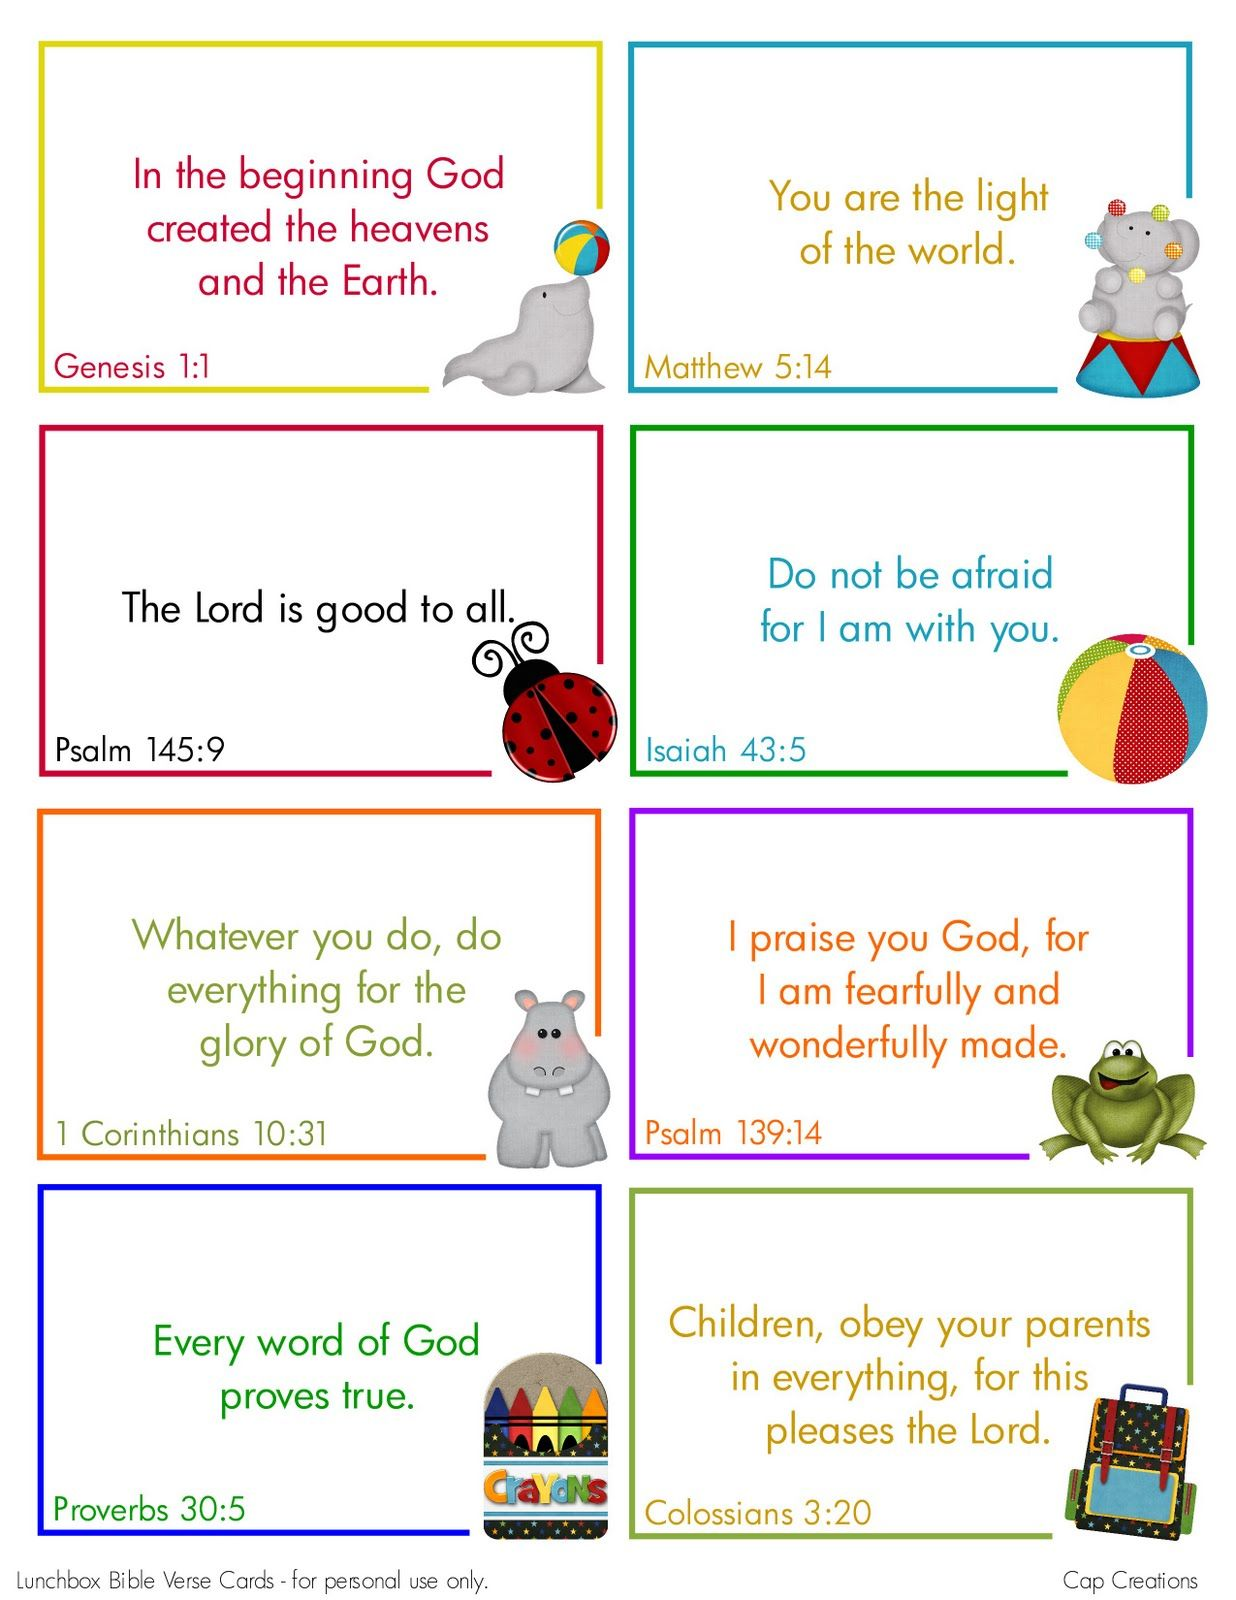 Free Printable Lunchbox Bible Verse Cards Cute Uld Use These With The Kids